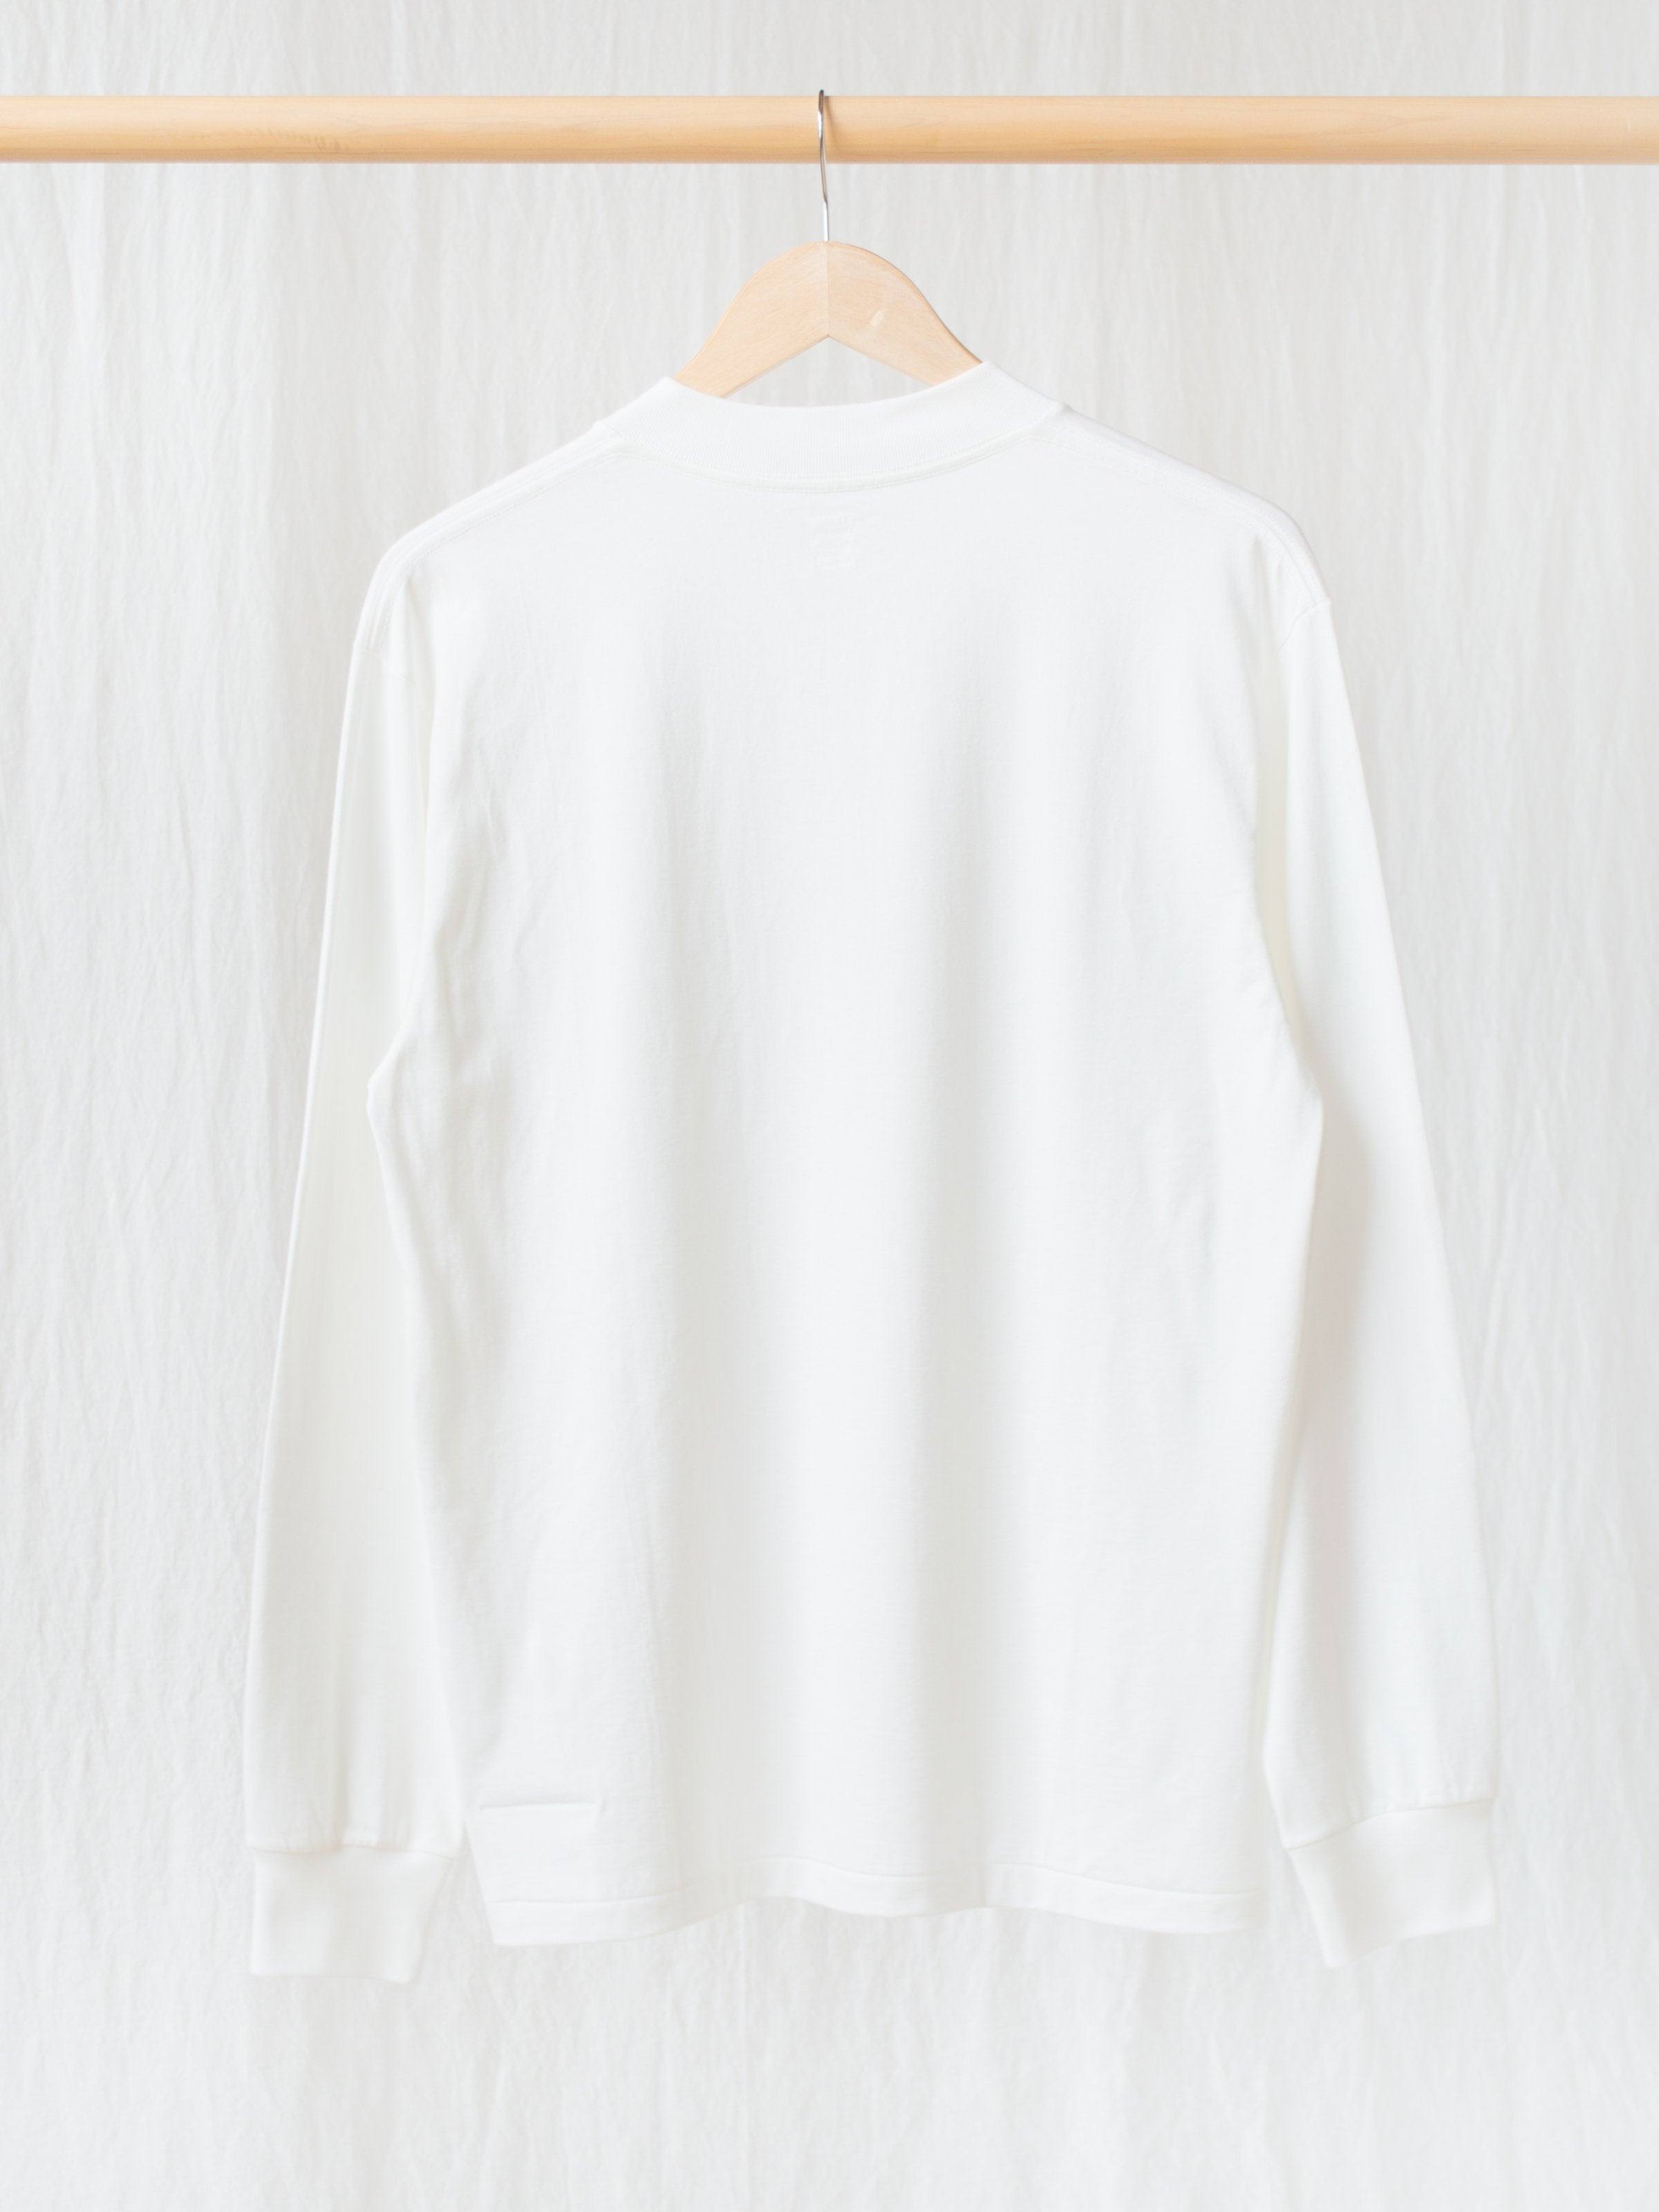 Namu Shop - Kaptain Sunshine Suvin Supima Crewneck Tube L/S Tee - White